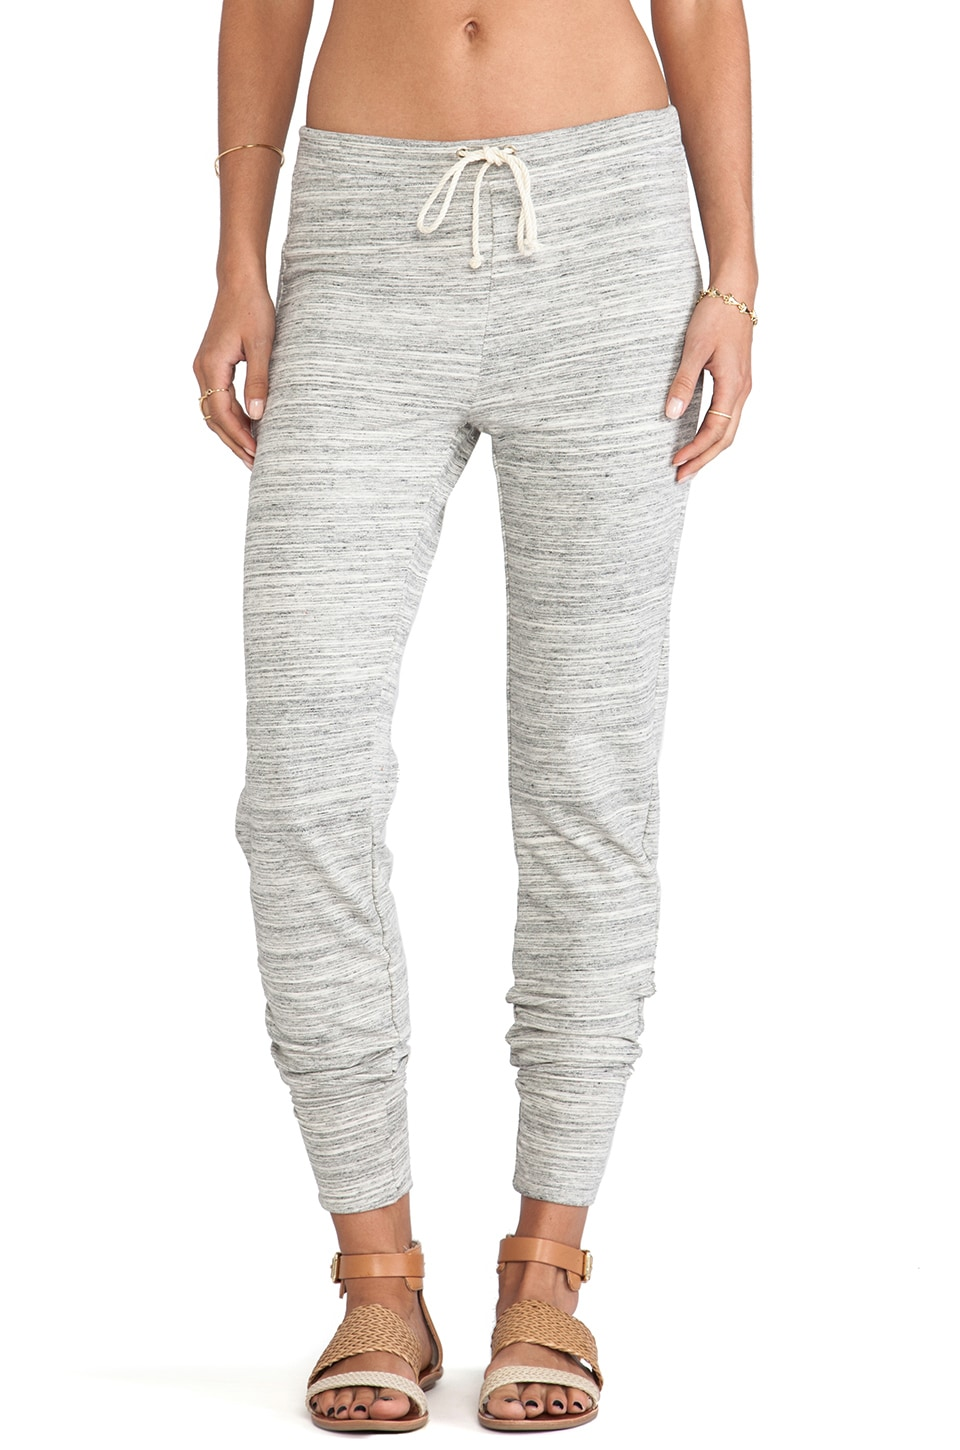 Kain Raylon Sweatpants in White Space Dye